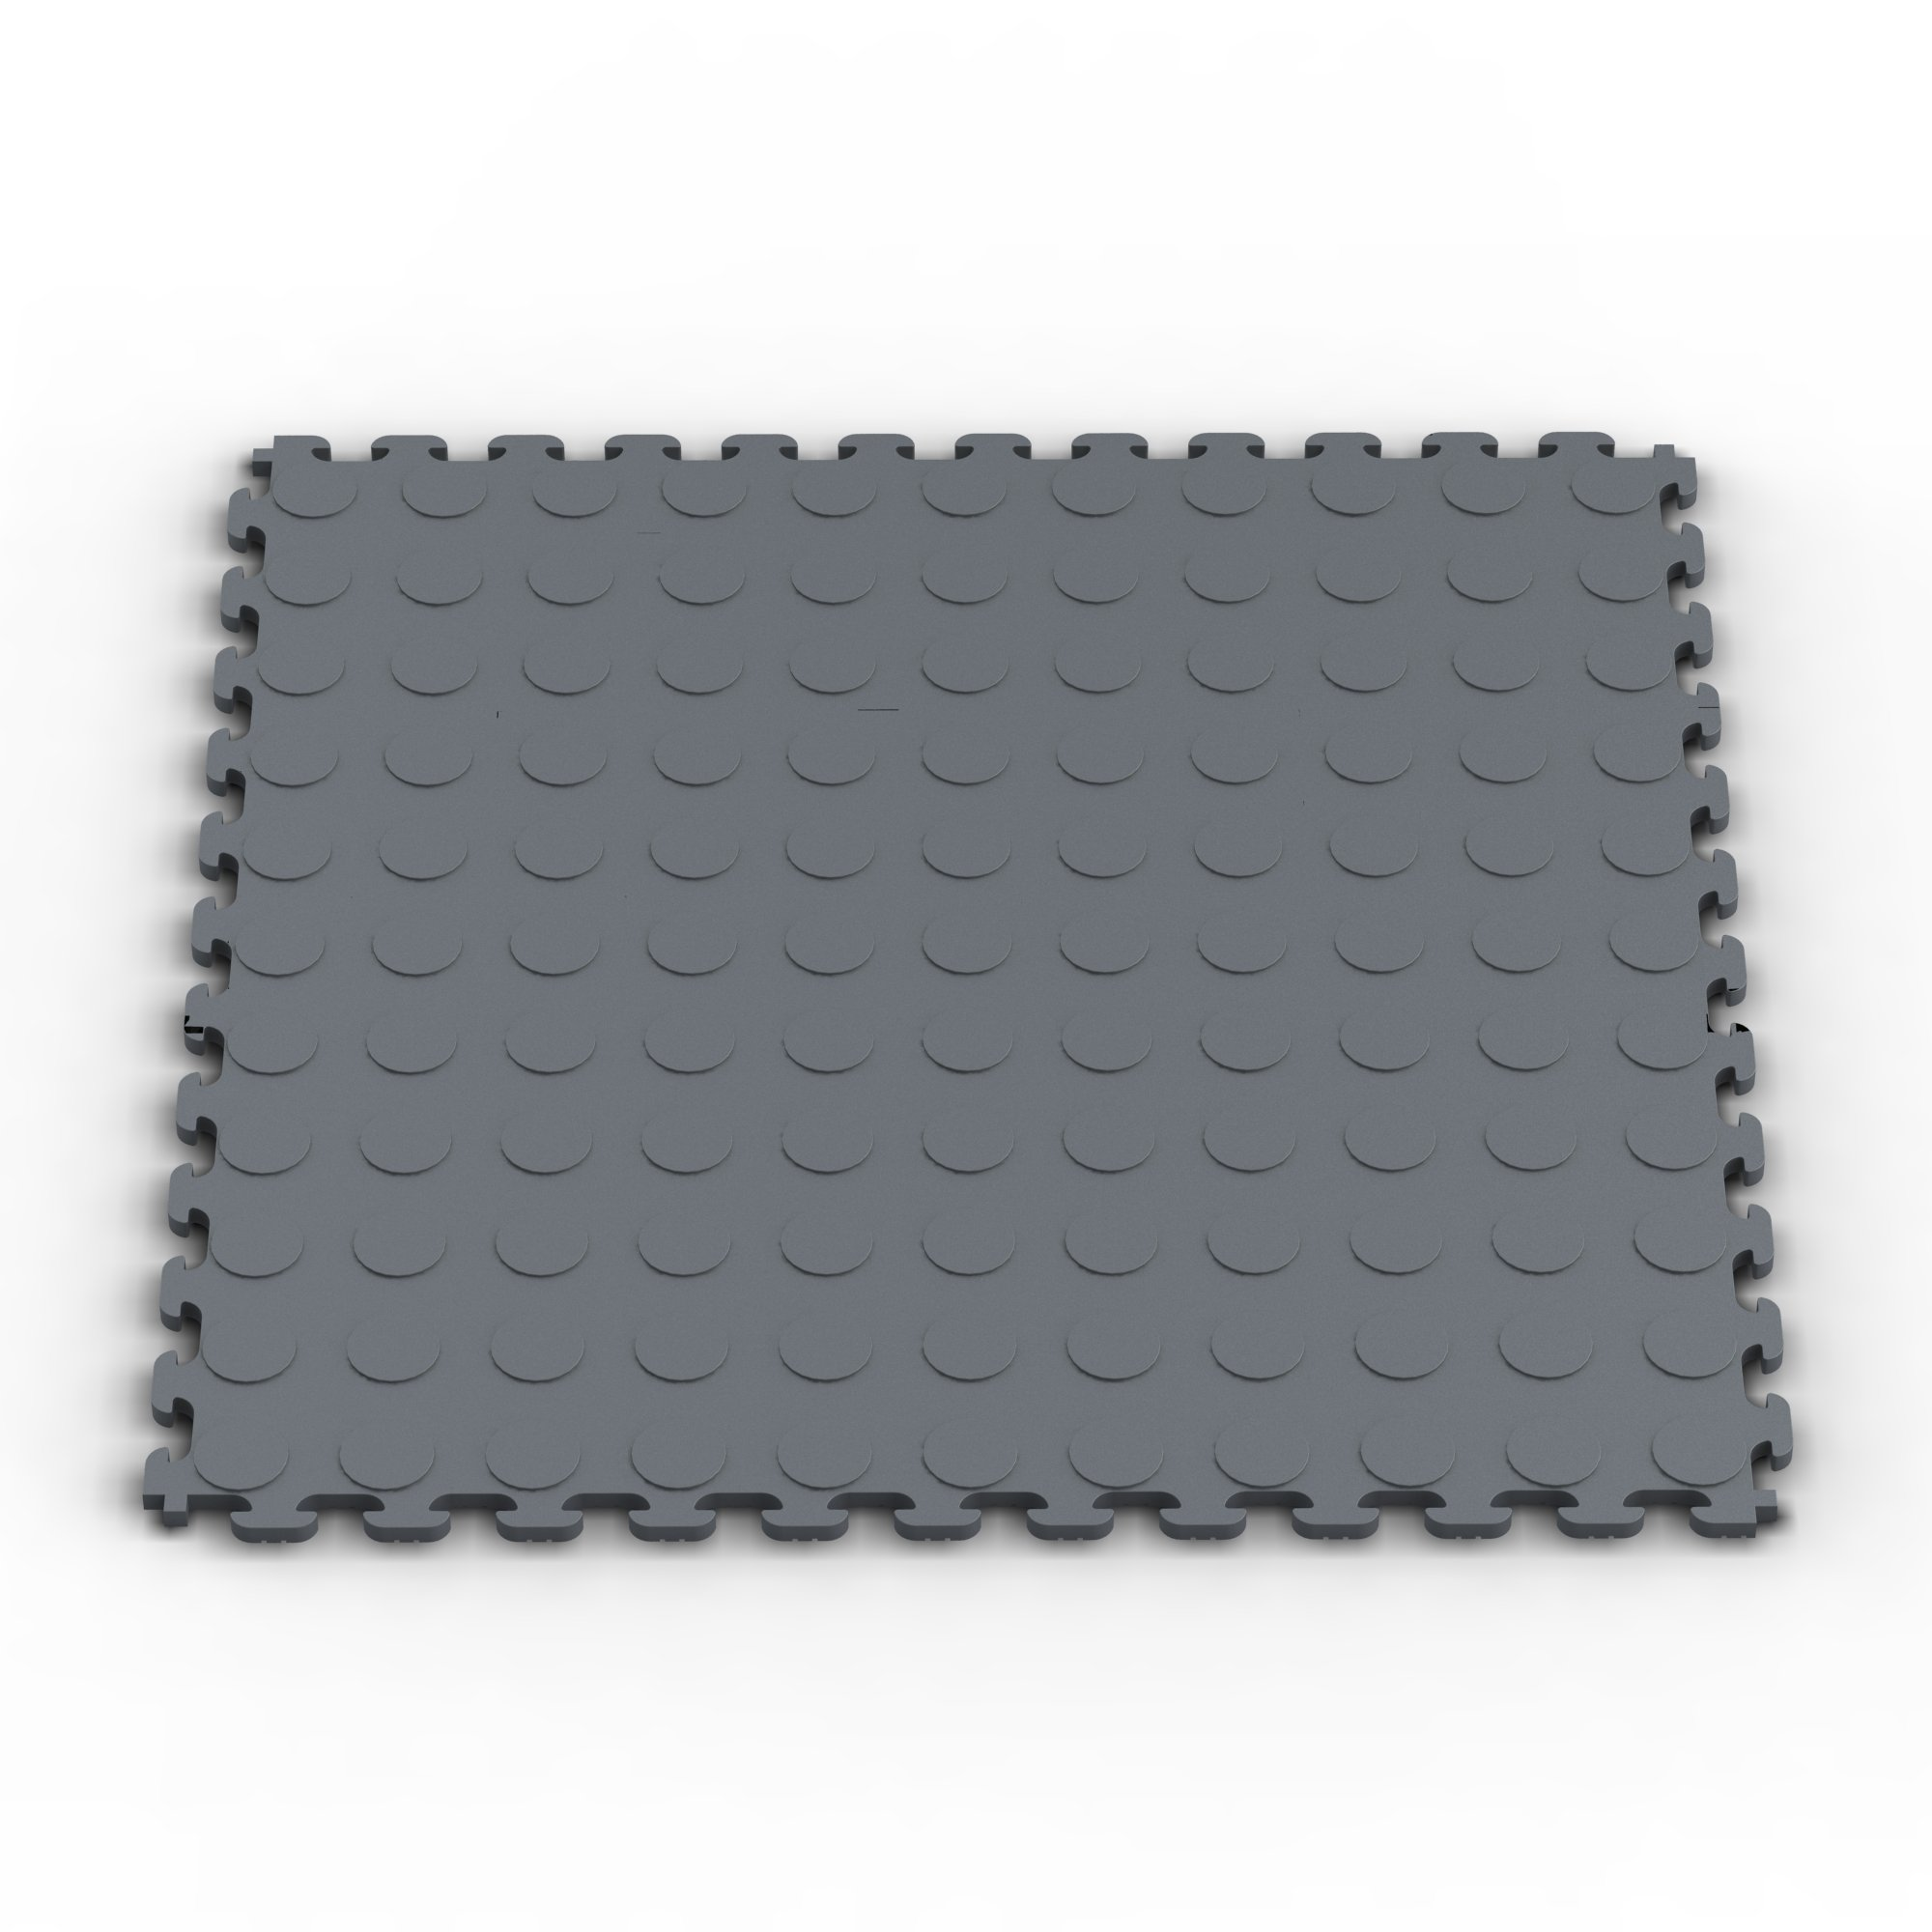 Norsk NSMPRC6DG Raised Coin Multi-Purpose PVC Flooring, Dove Gray, 6-Pack by Norsk-Stor (Image #1)